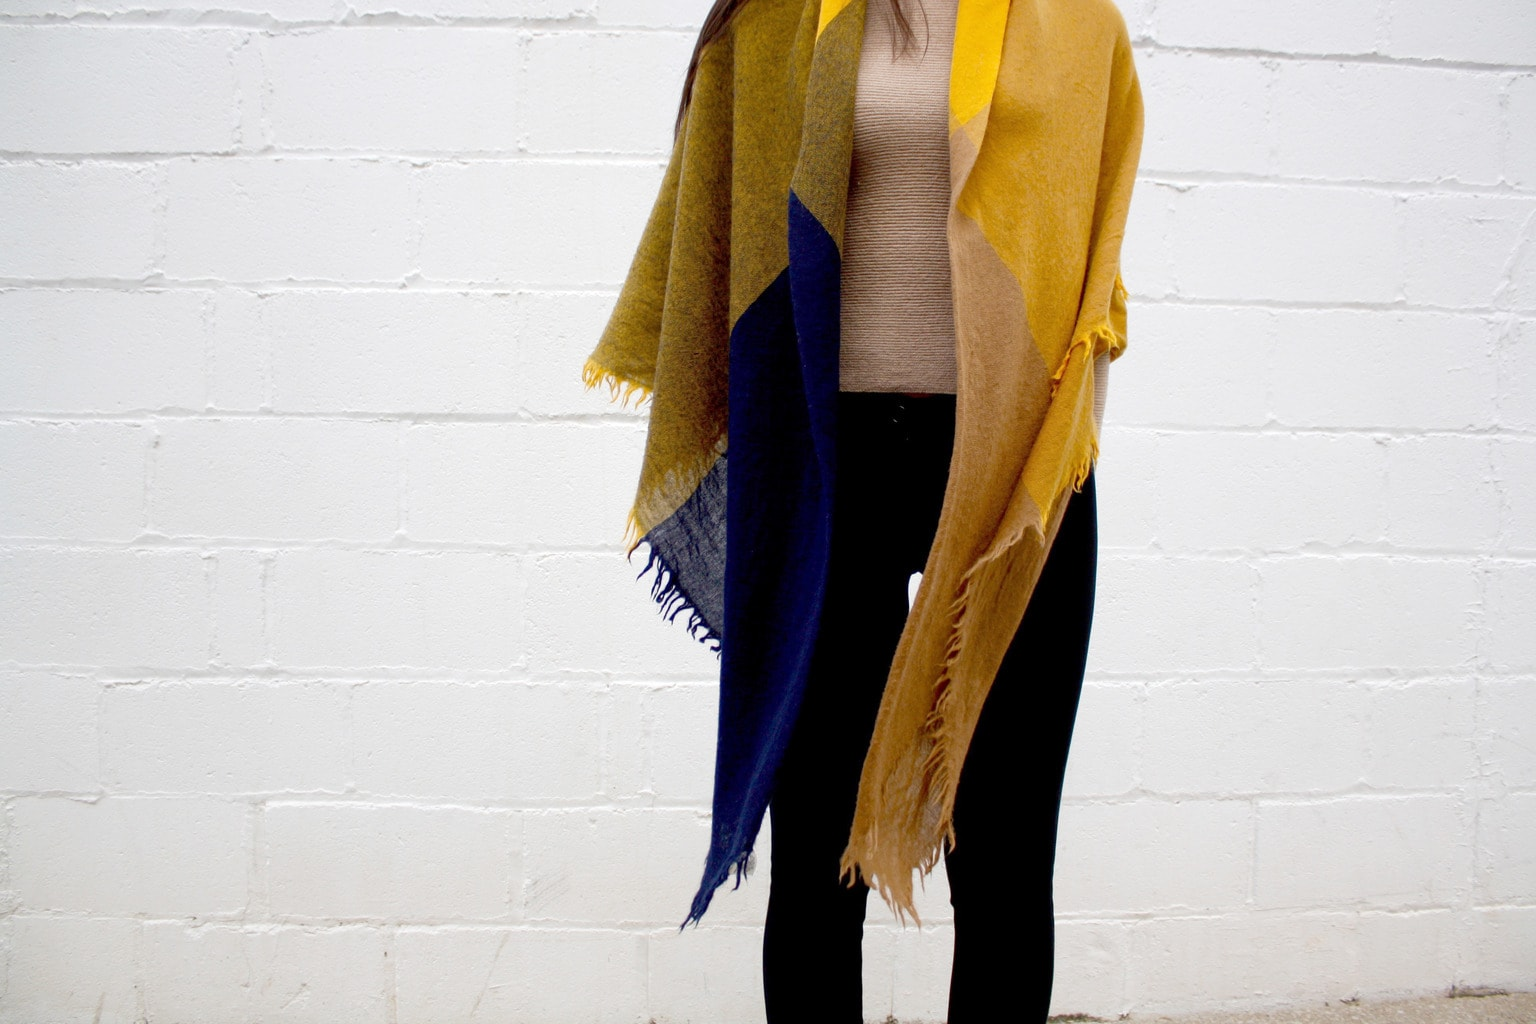 A college student at Western University wears a yellow and blue scarf as a shawl with leggings